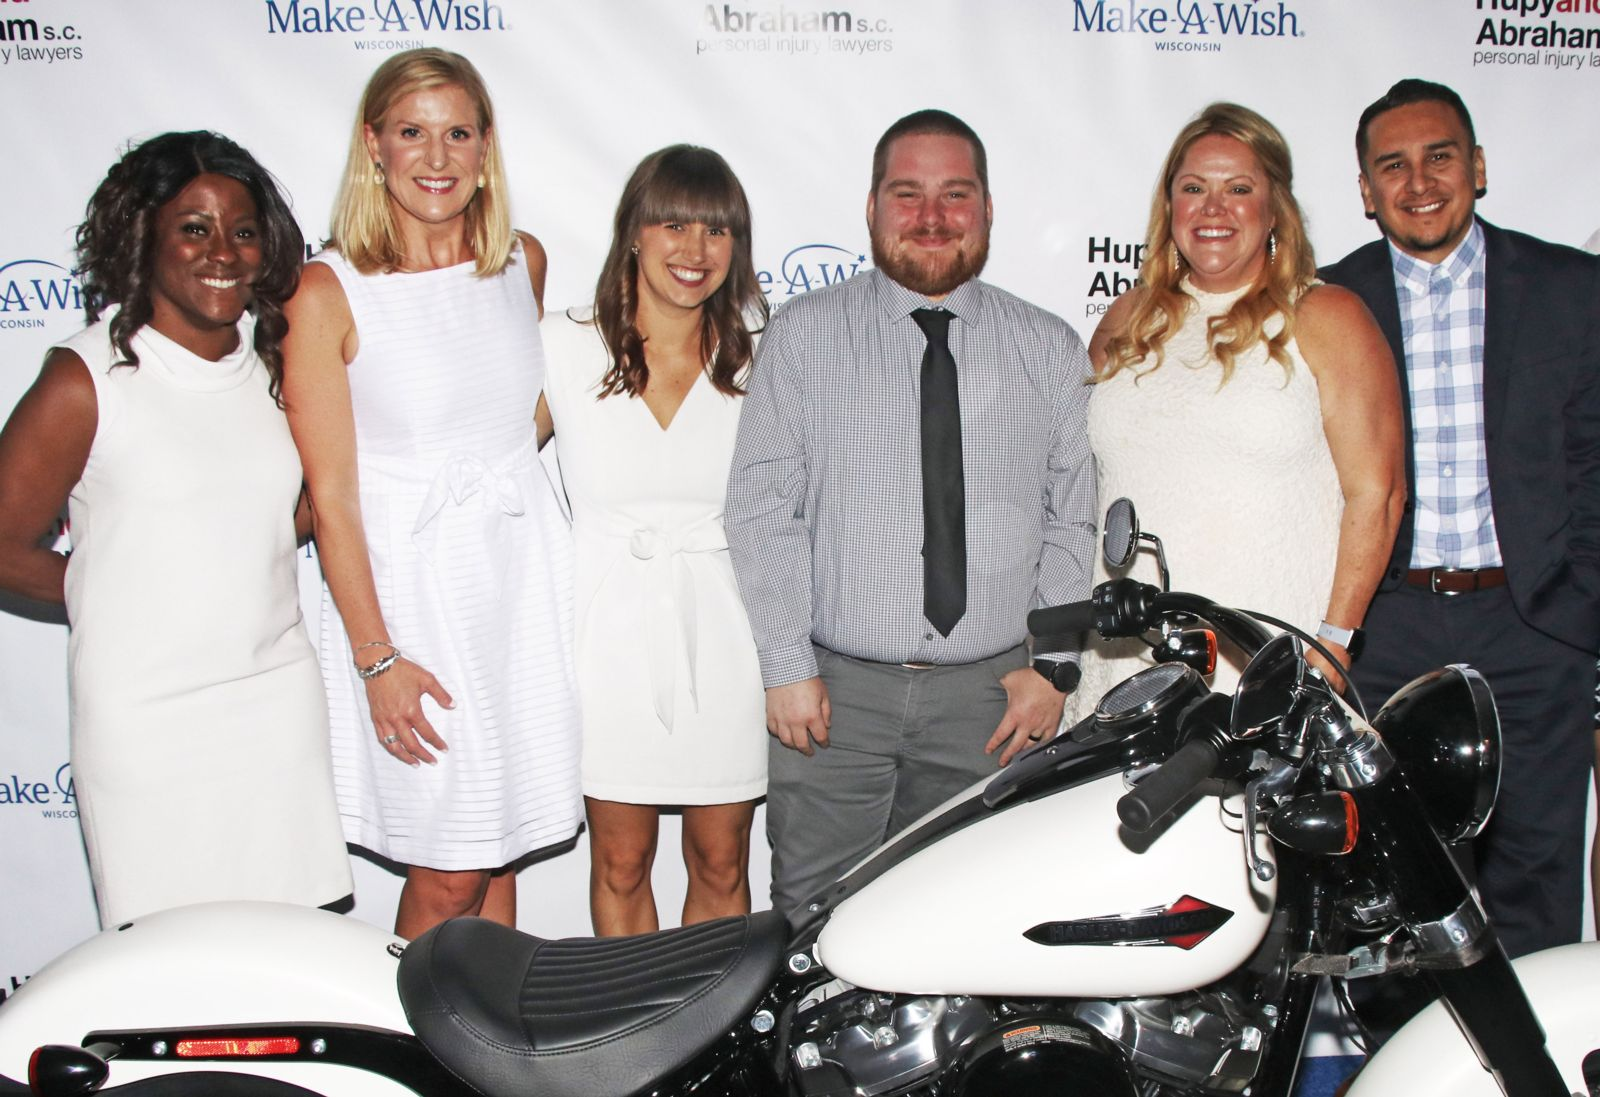 Hupy employees at Make a Wish Event